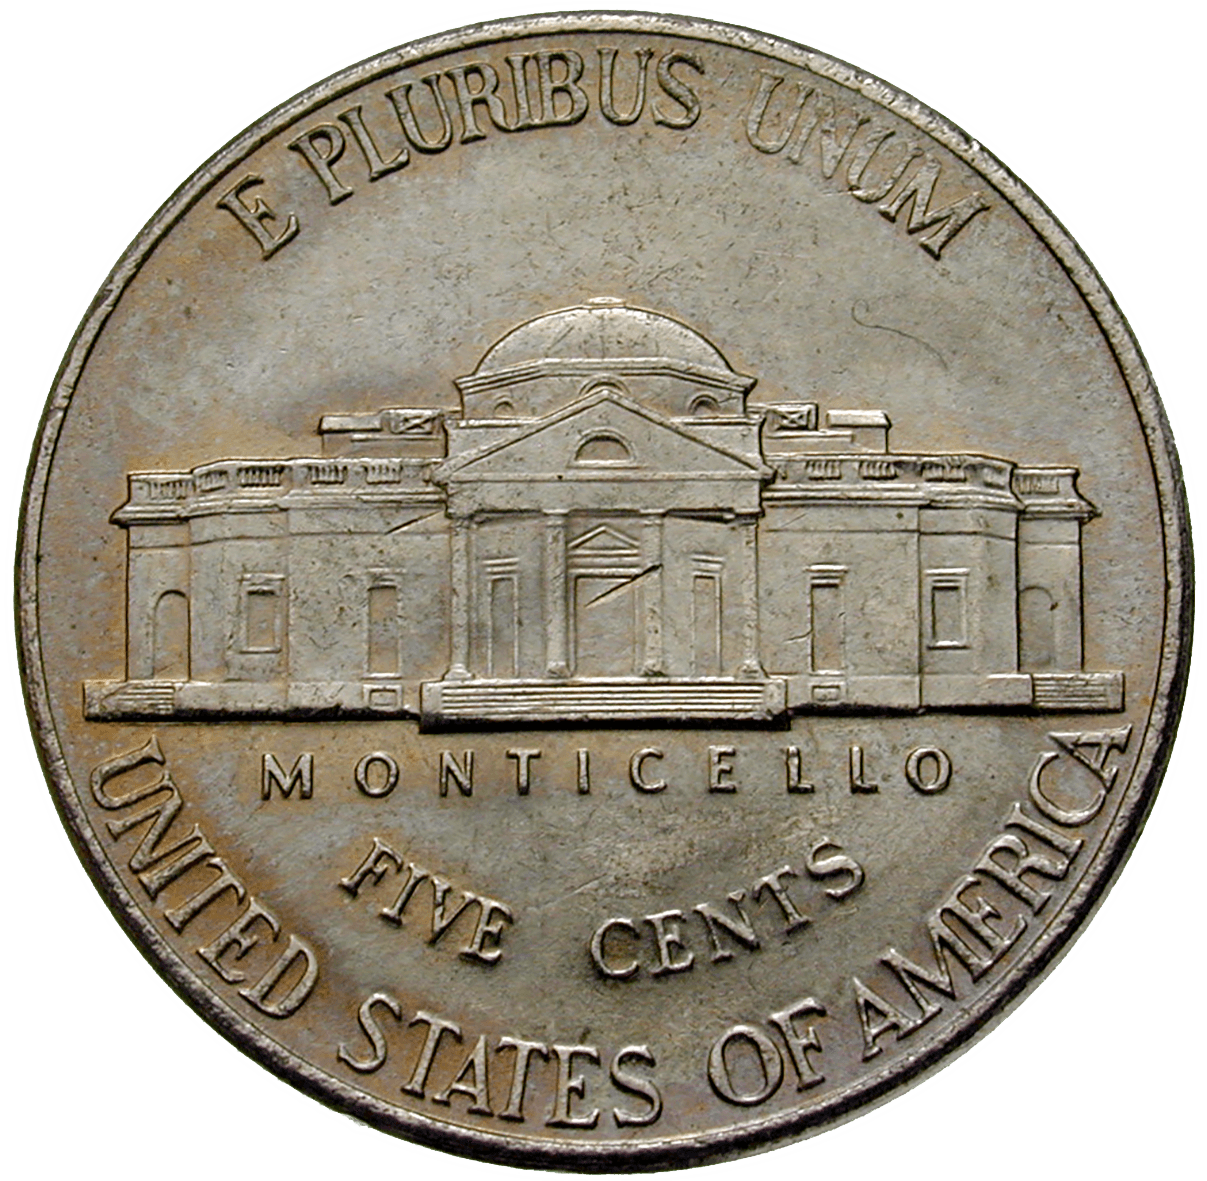 United States of America, 5 Cents 2000 (reverse)